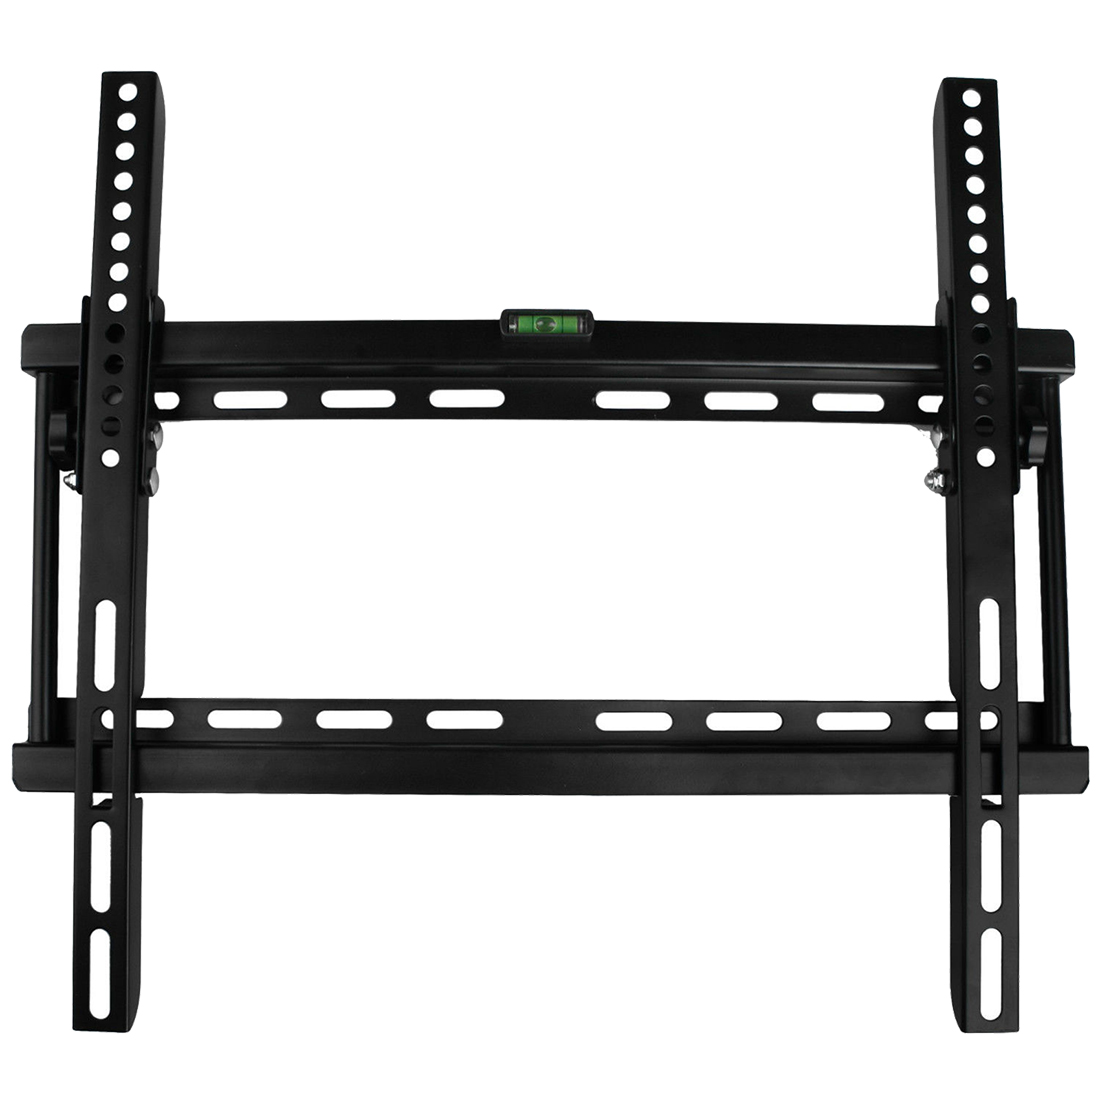 Bathroom Fixtures Bathroom Shelves Flat Slim Tv Wall Mount Bracket 23 28 30 32 40 42 48 50 55 Inch Led Lcd Plasma 100% High Quality Materials